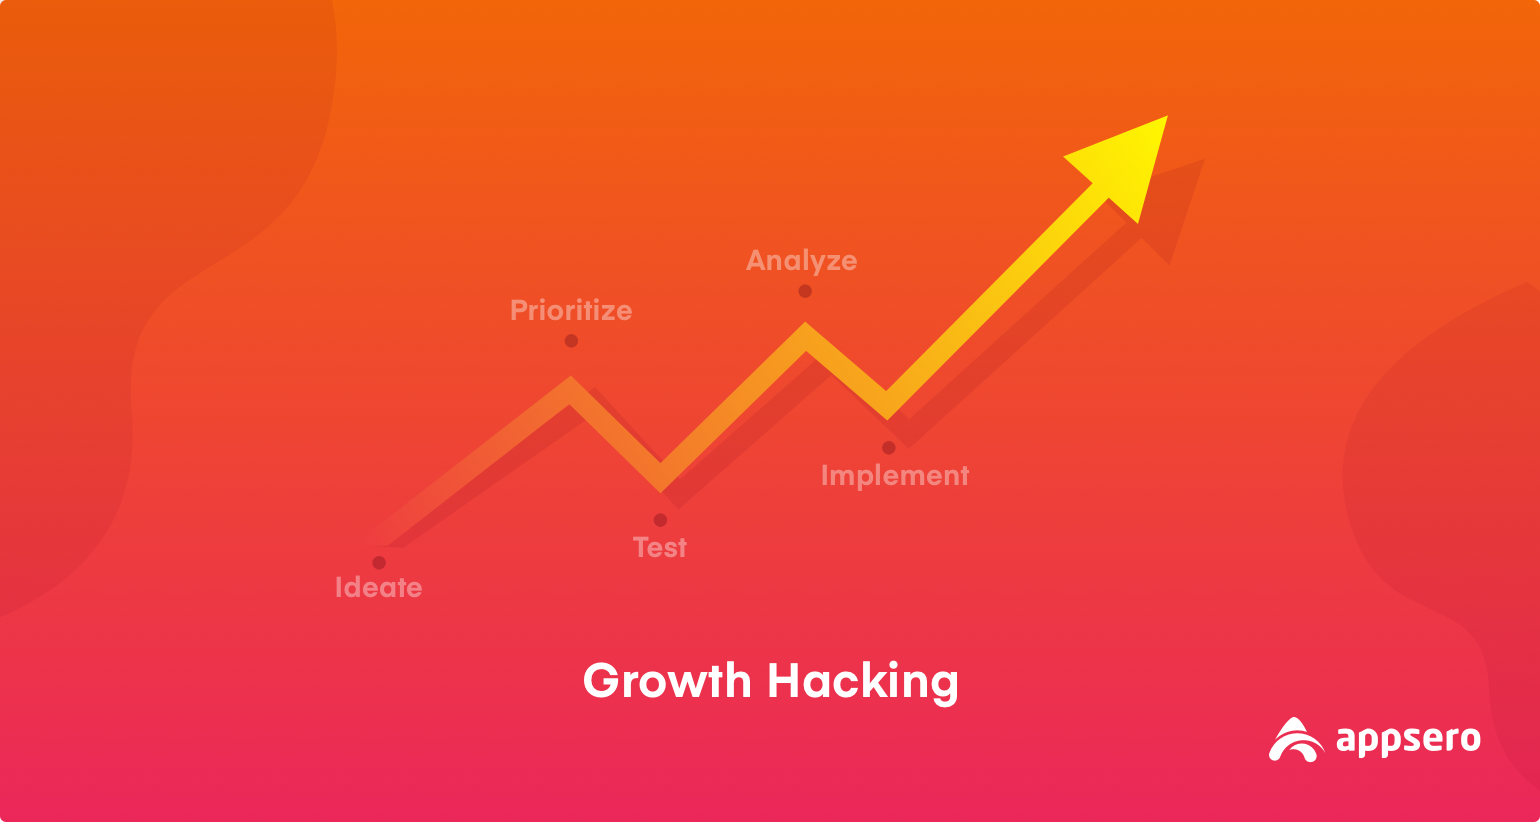 Growth Hacking: Whether To Use It Or Not?